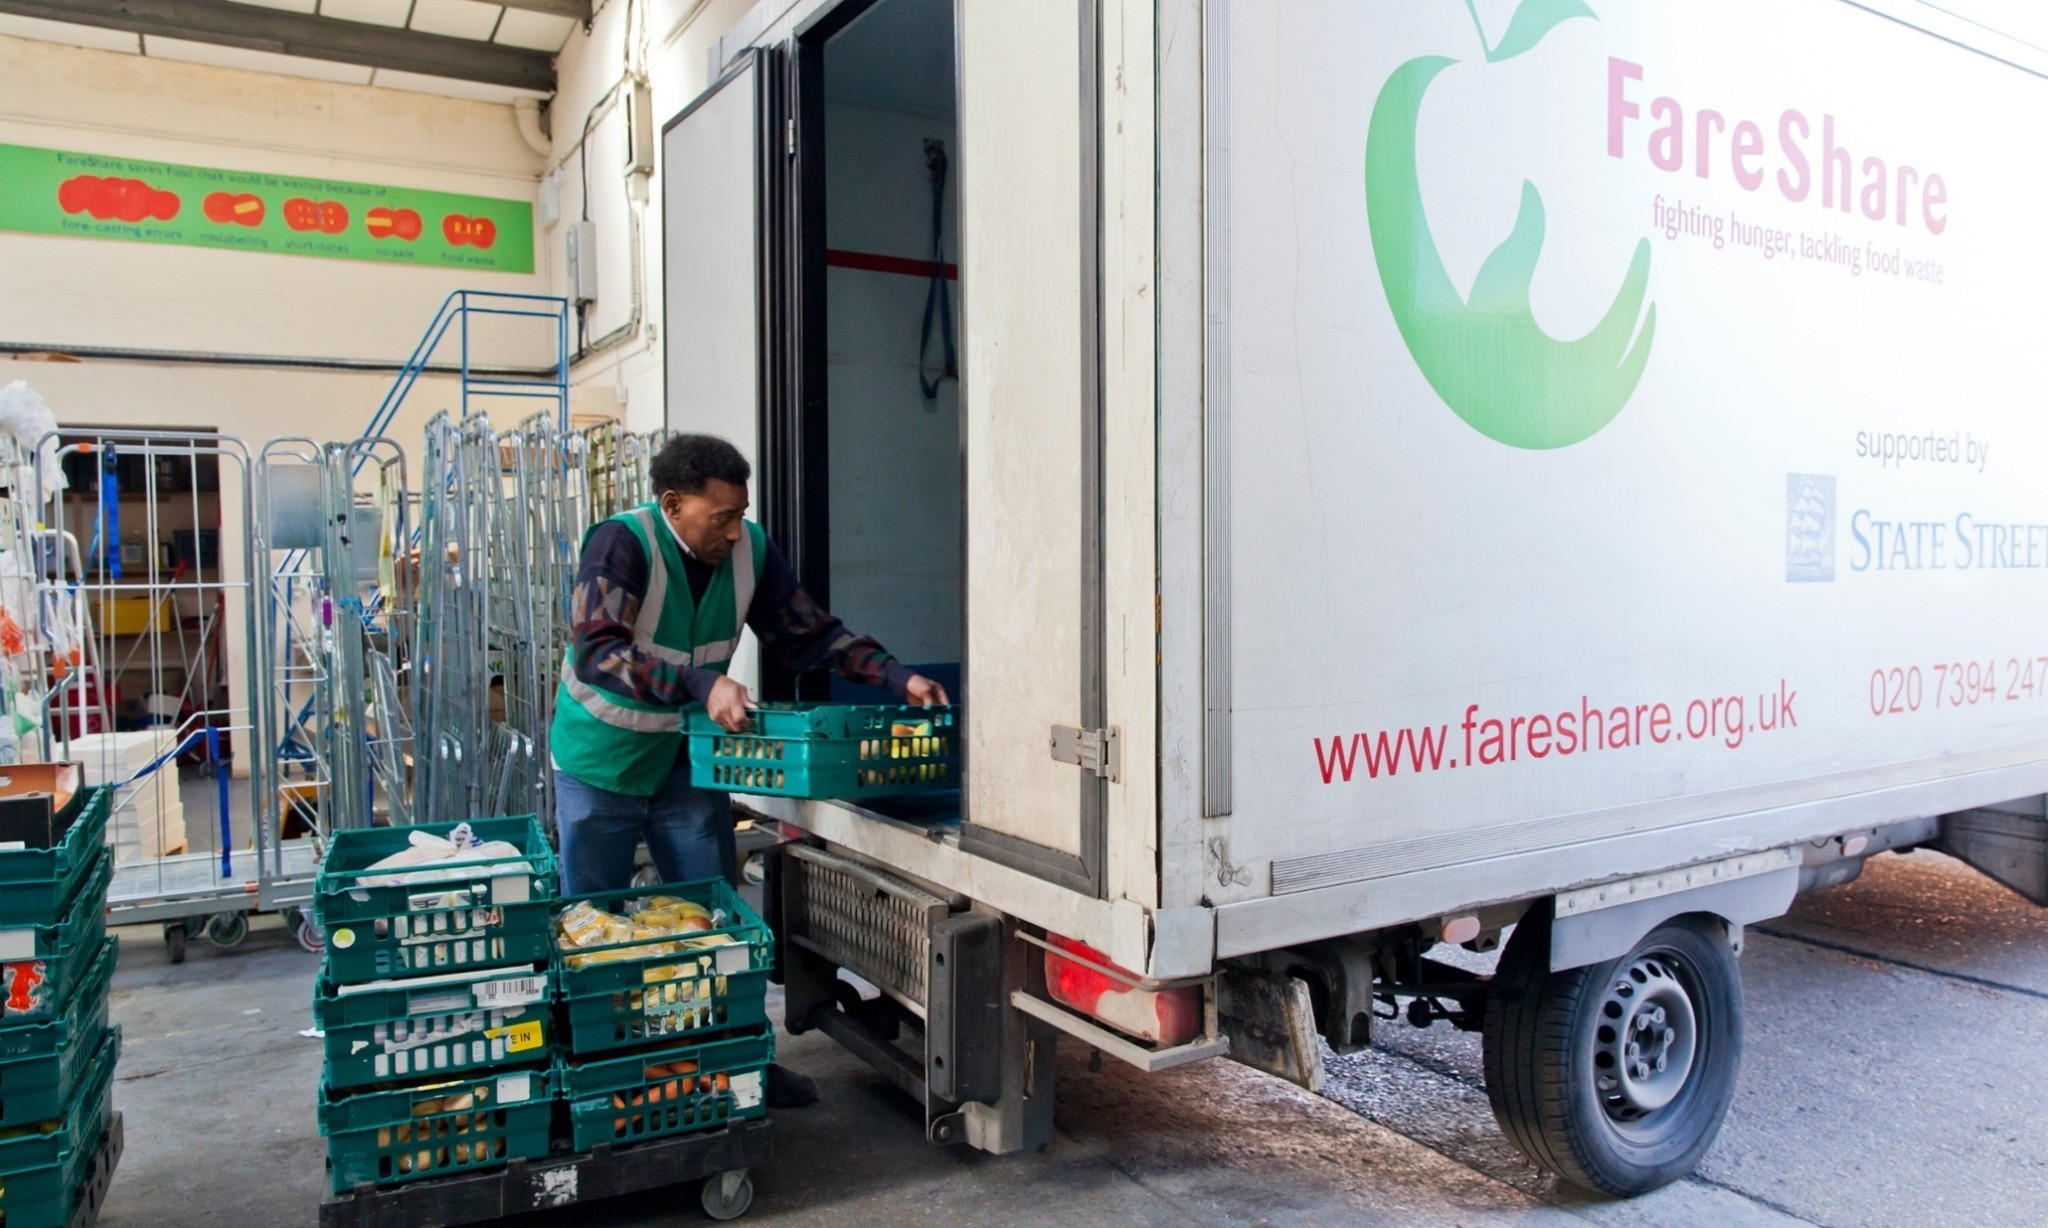 The scandal of the 89m tonnes of food binned while millions go hungry